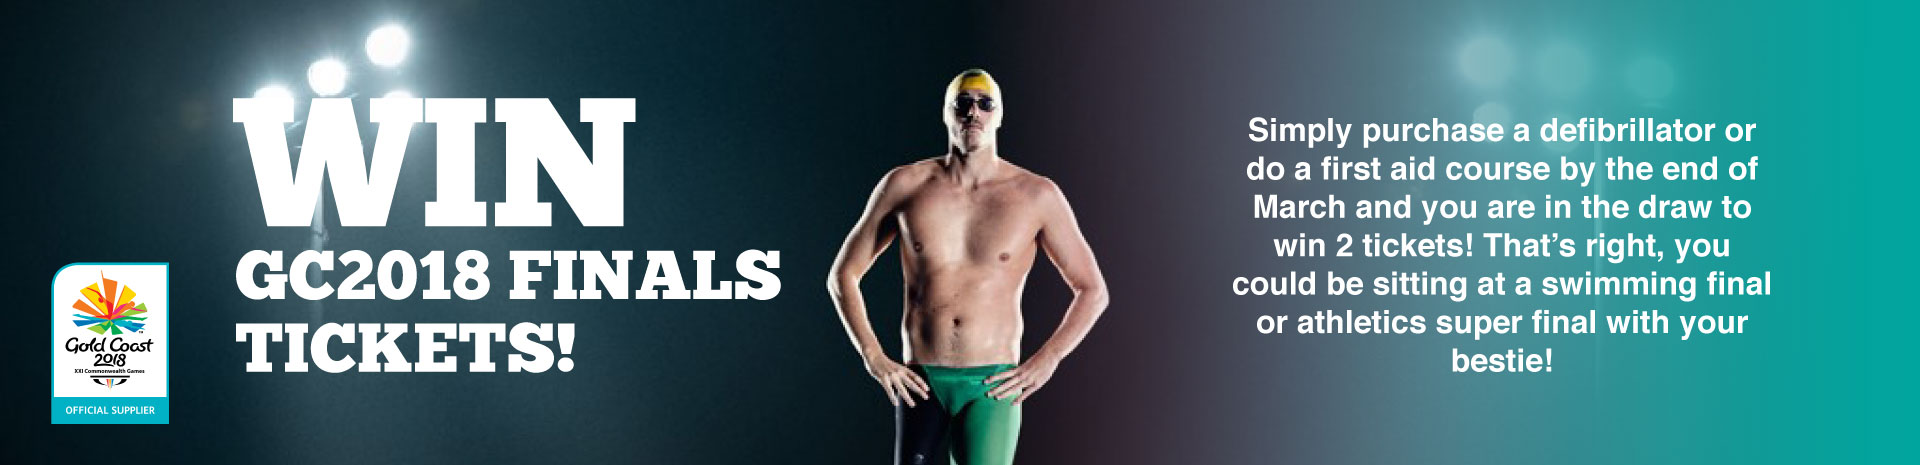 Gold Coast 2018 Commonwealth Games Competition